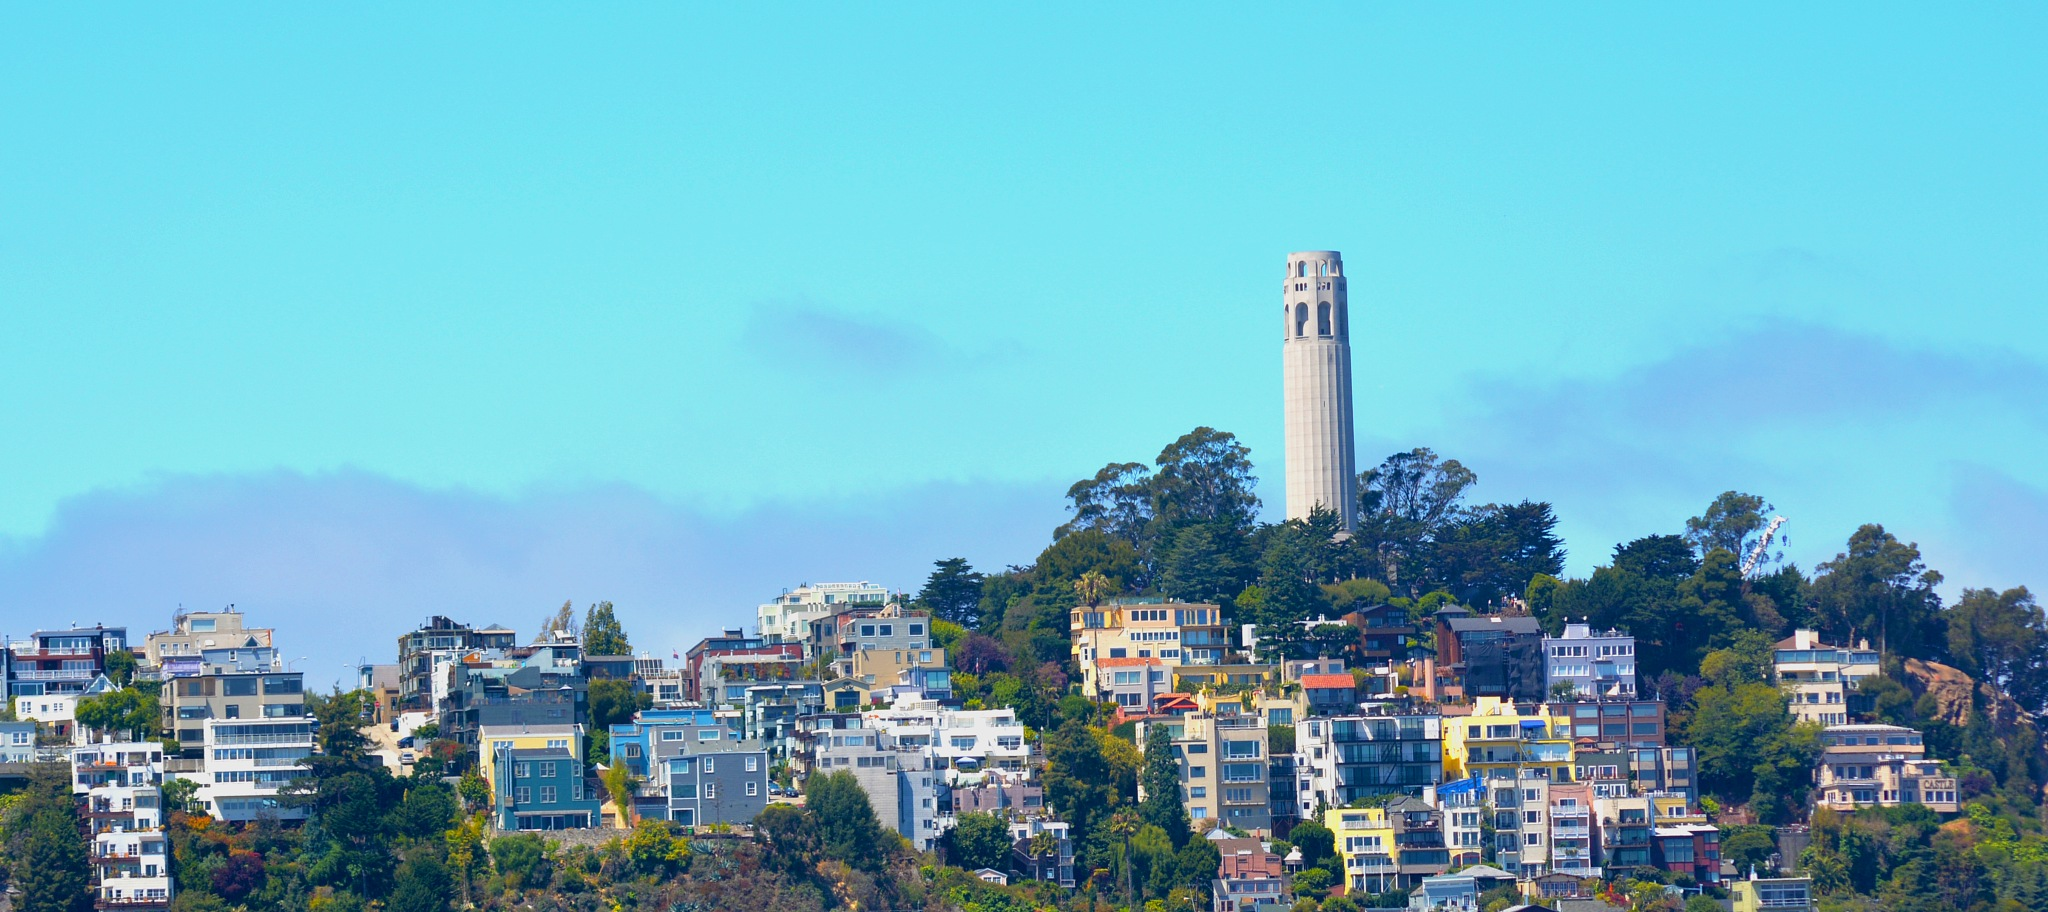 Coit Tower on Telegraph Hill by HKS Images